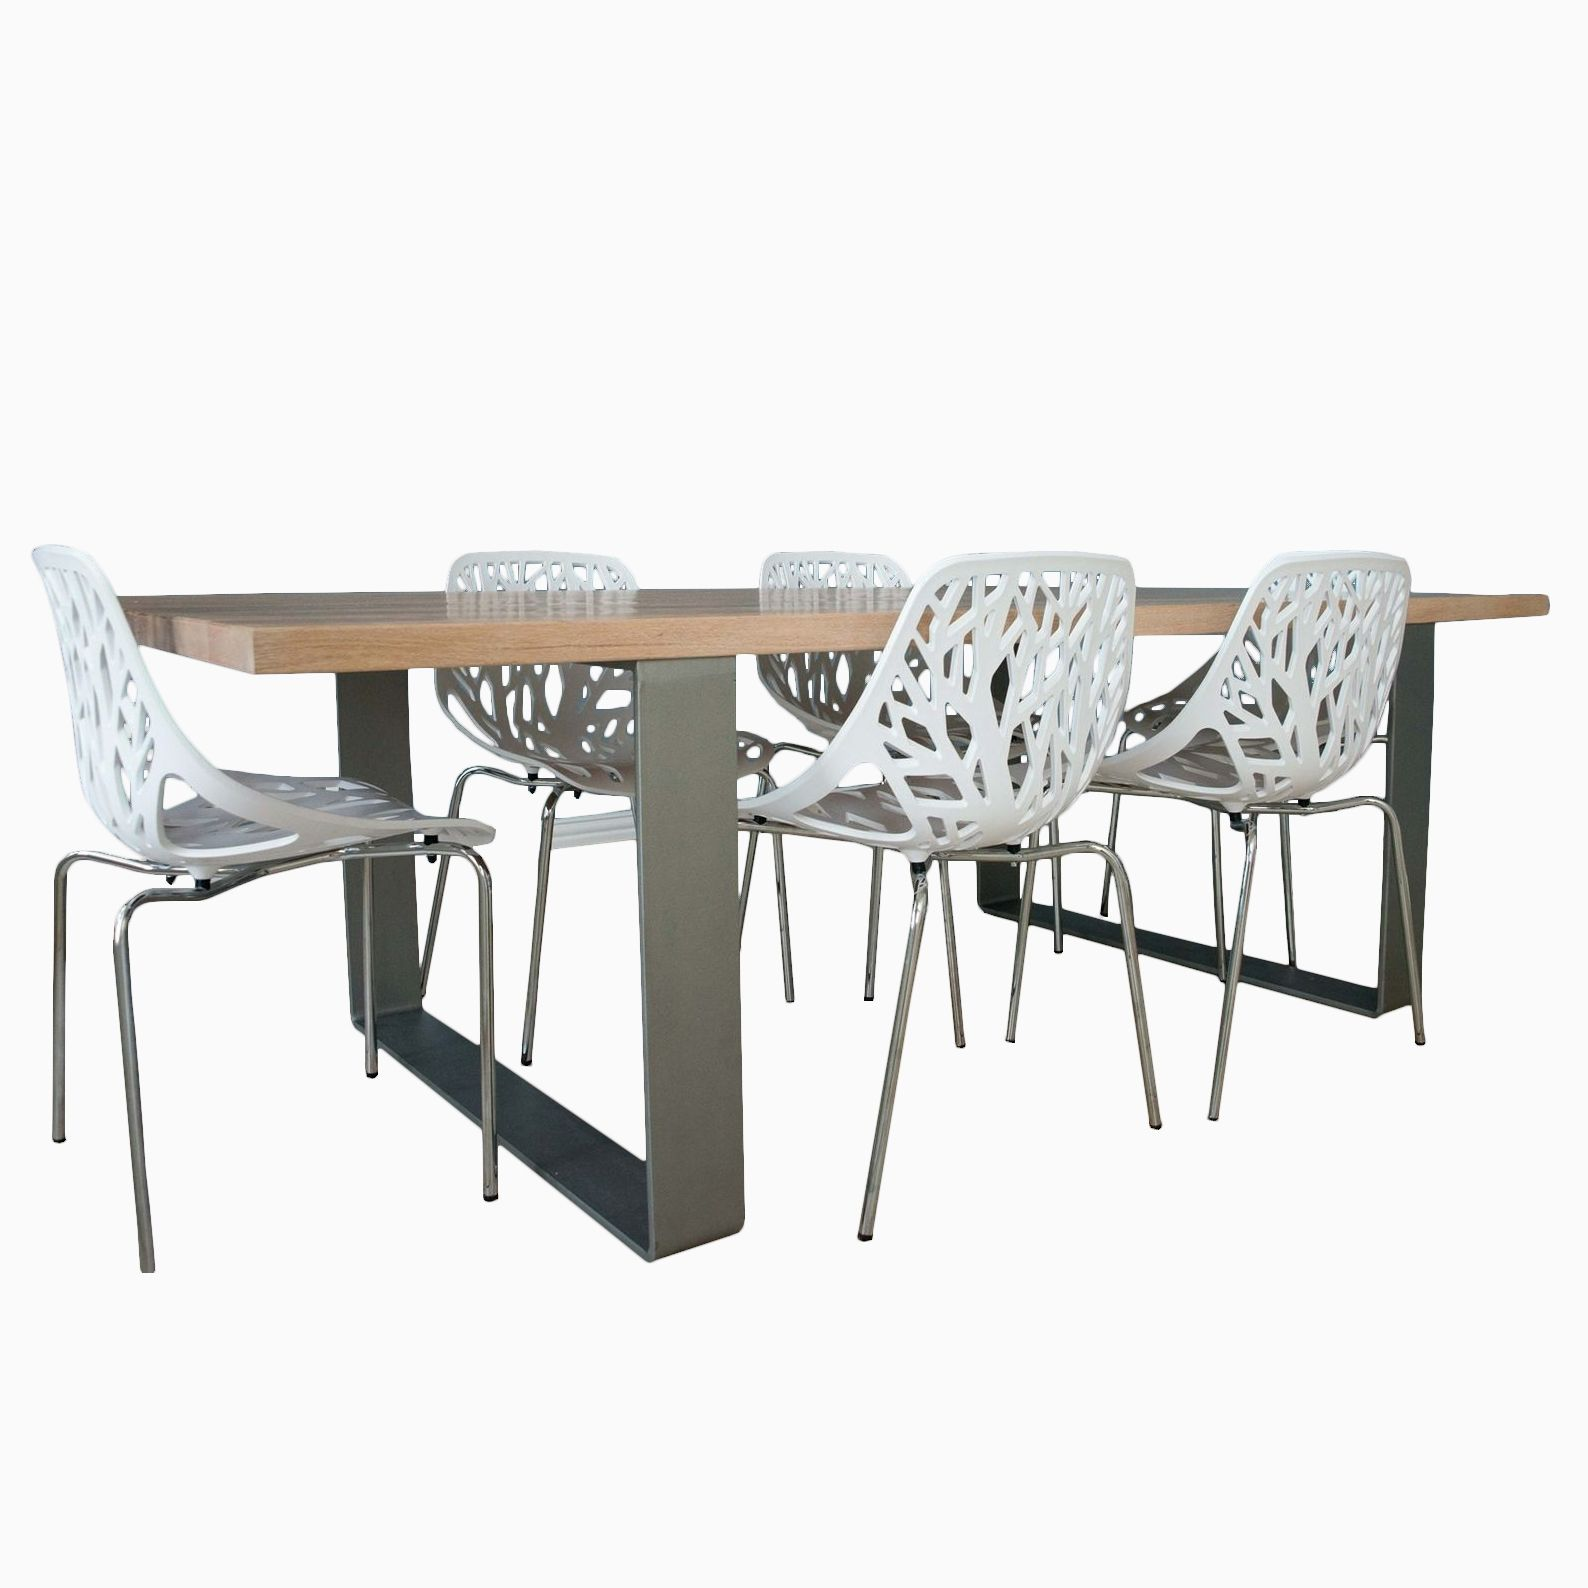 Buy Handmade Oak Dining Room Table With Iron Legs Made To Order From . Full resolution  photo, nominally Width 1588 Height 1588 pixels, photo with #826449.